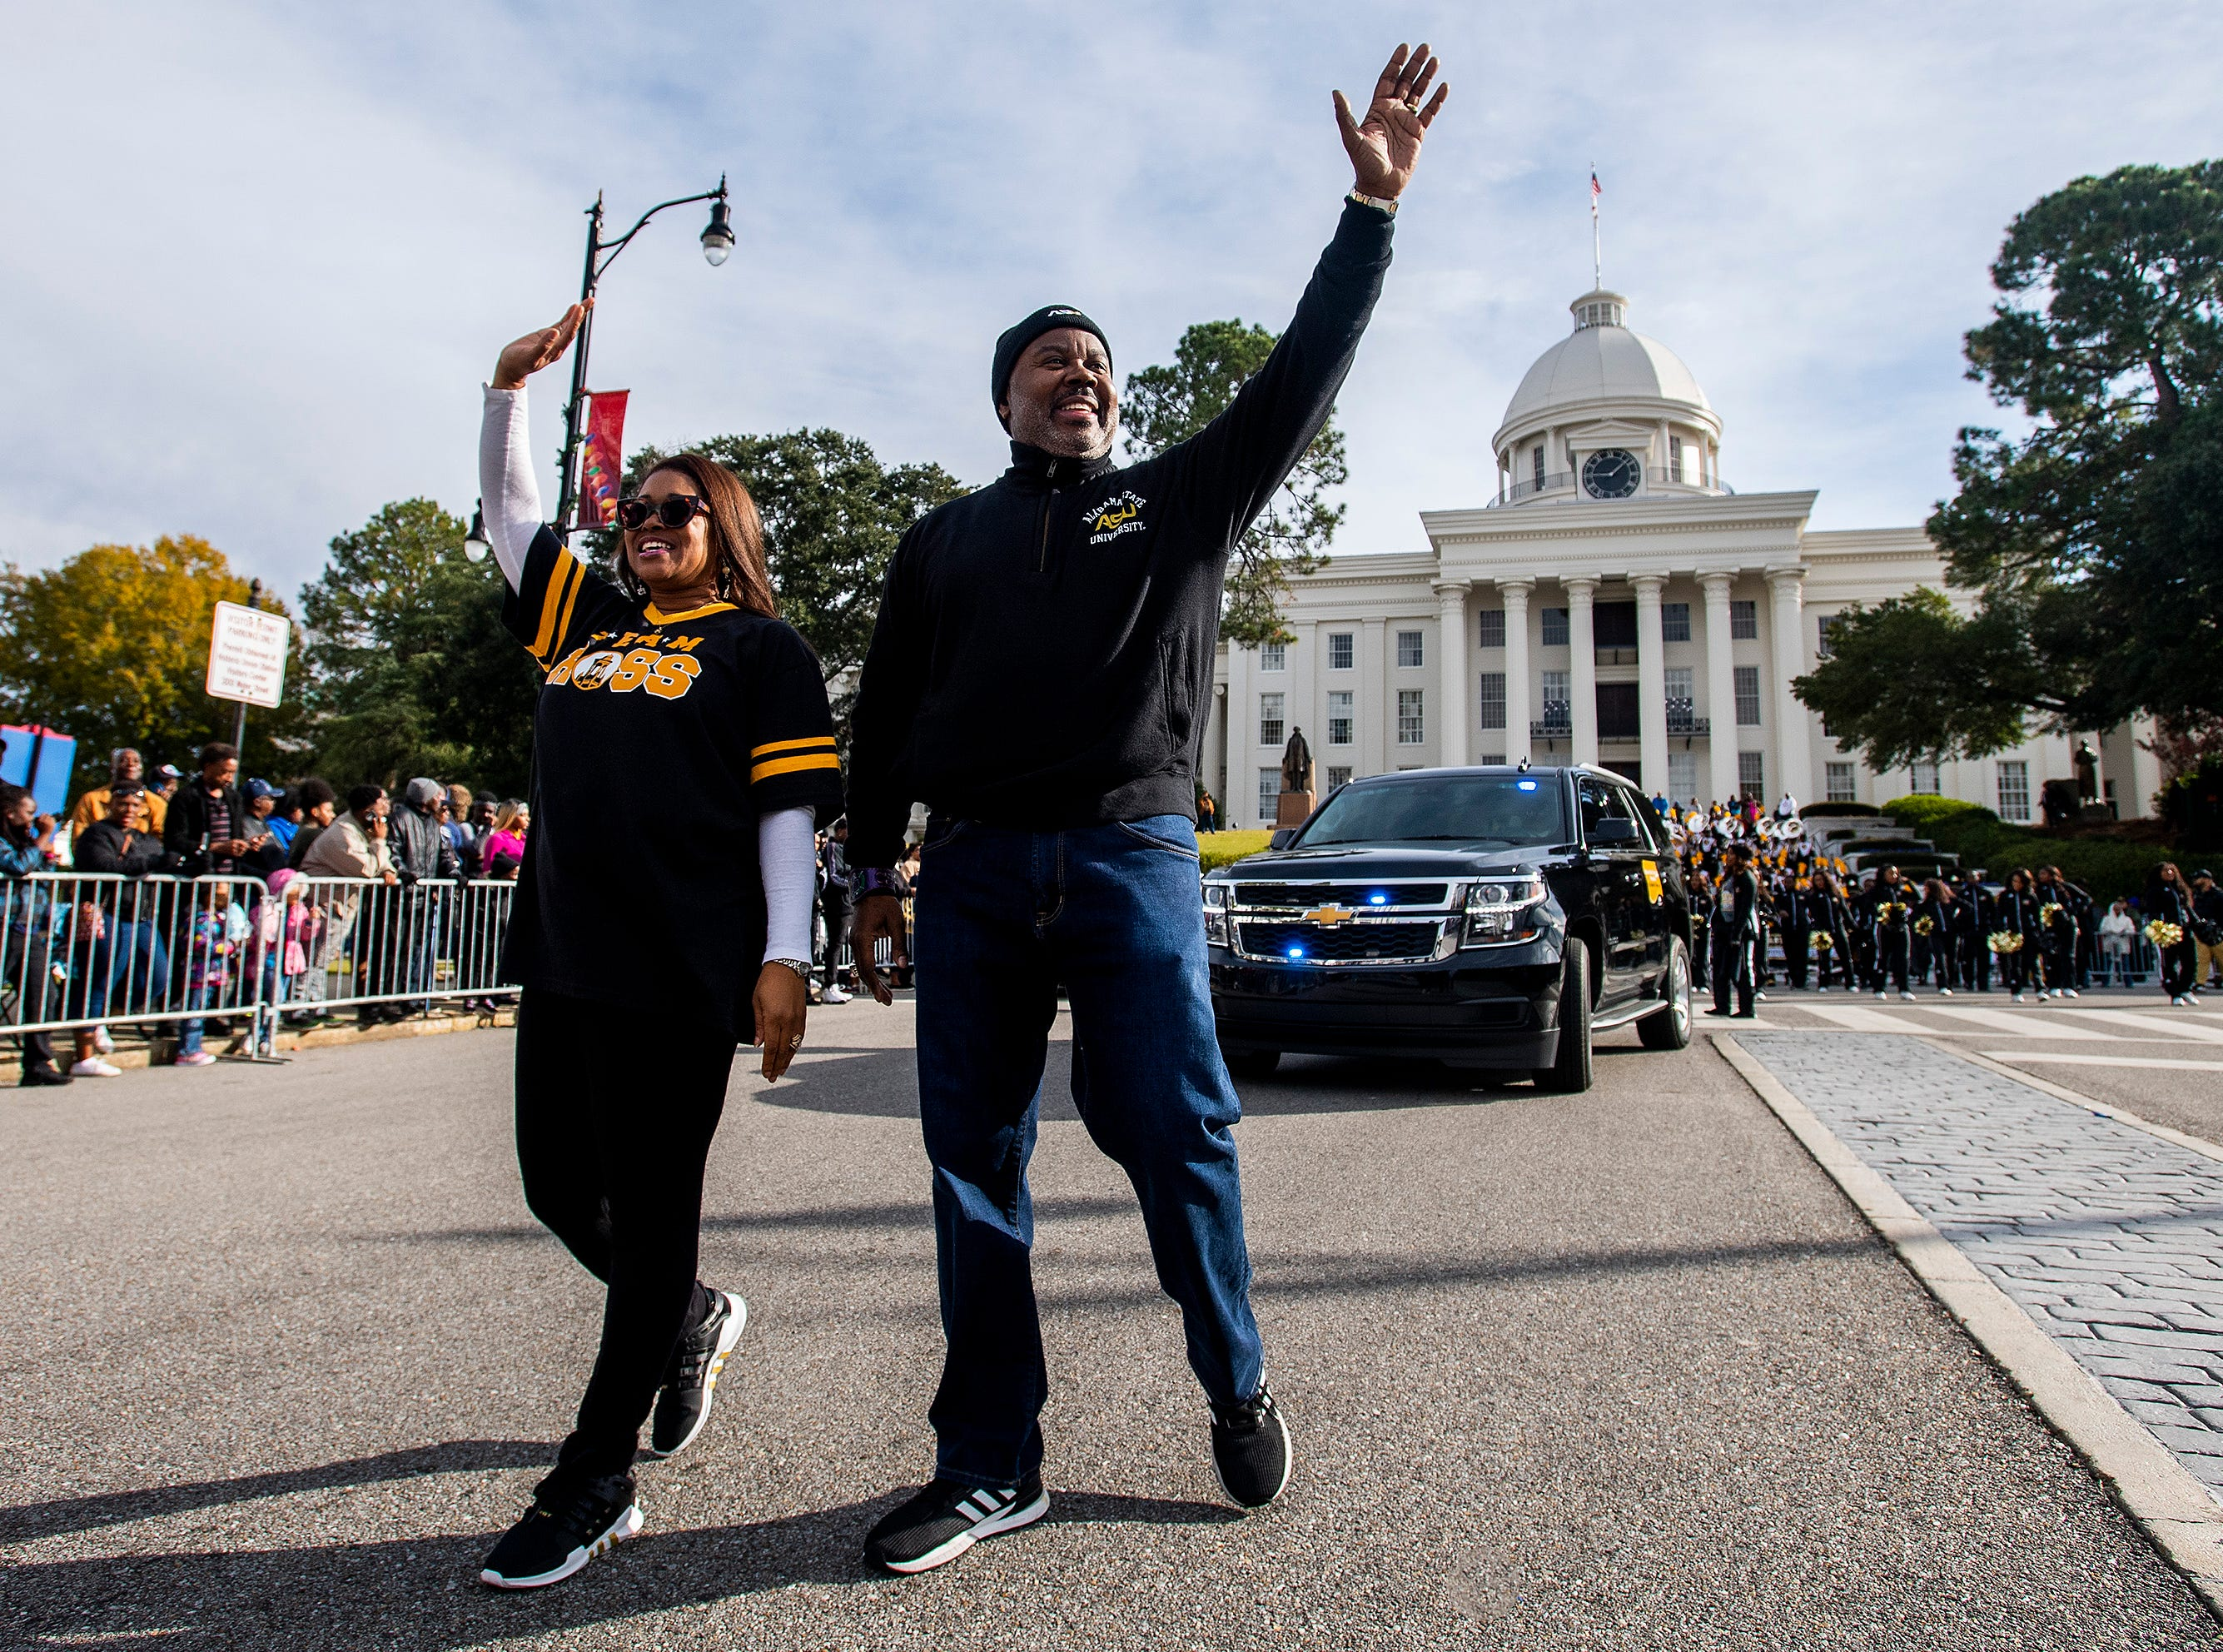 Alabama State University President Quinton Ross during the Turkey Day Classic Parade in downtown Montgomery, Ala., on Thanksgiving Day, Thursday November 22, 2018.